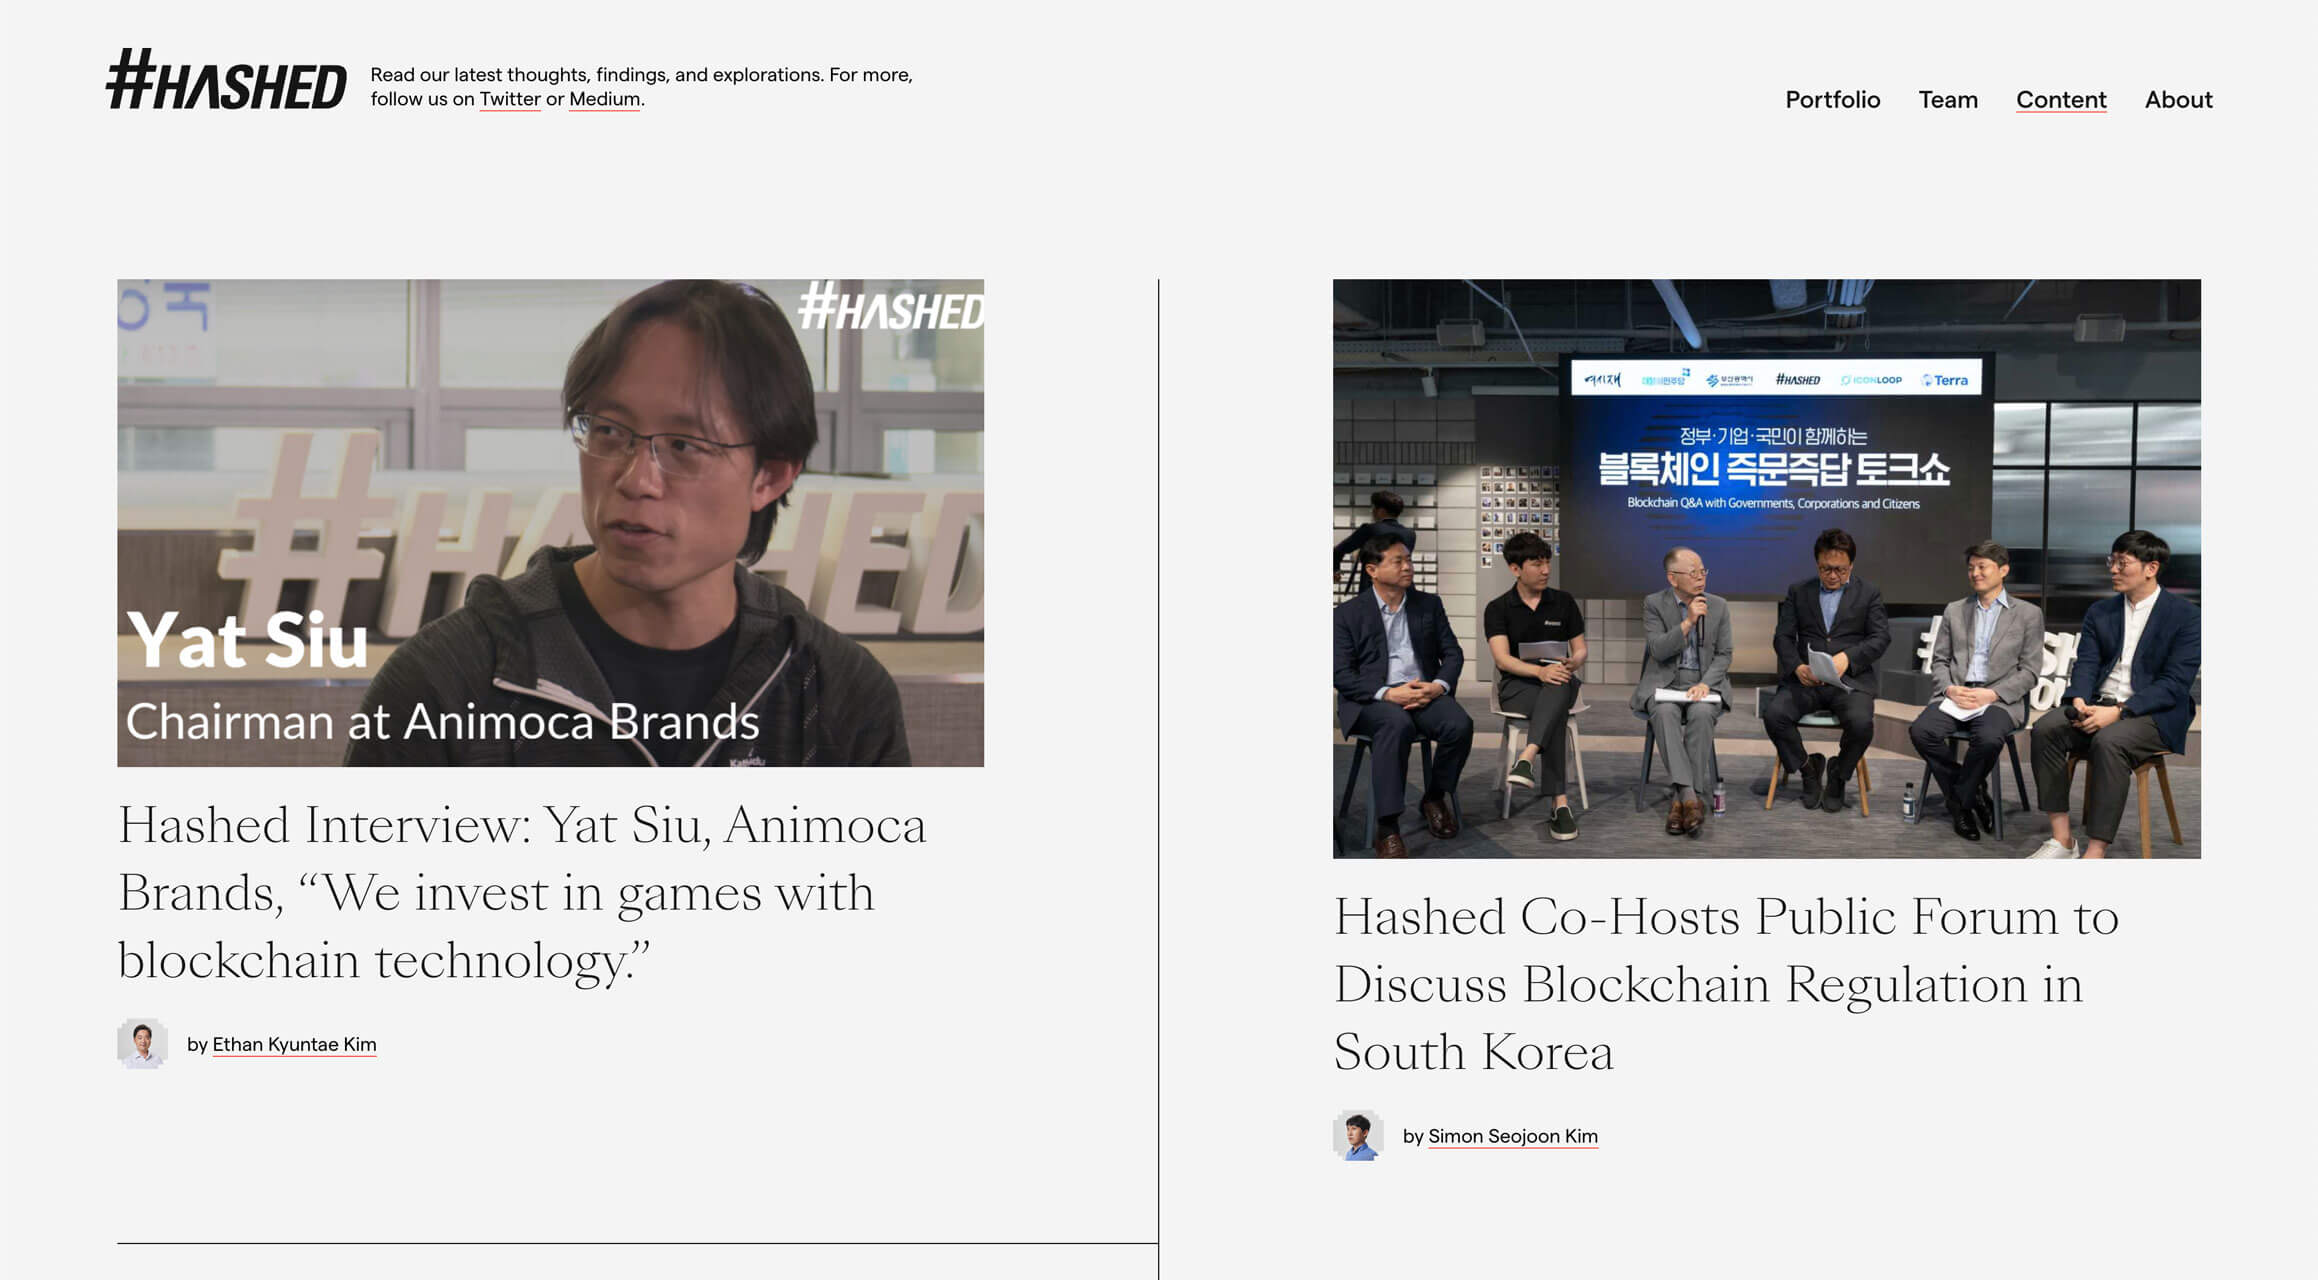 A screenshot of the Hashed content page. Two stories lead the two-column layout: one about an interview with Yat Siu from Animoca Brands, and the other about a Hashed-hosted public forum.